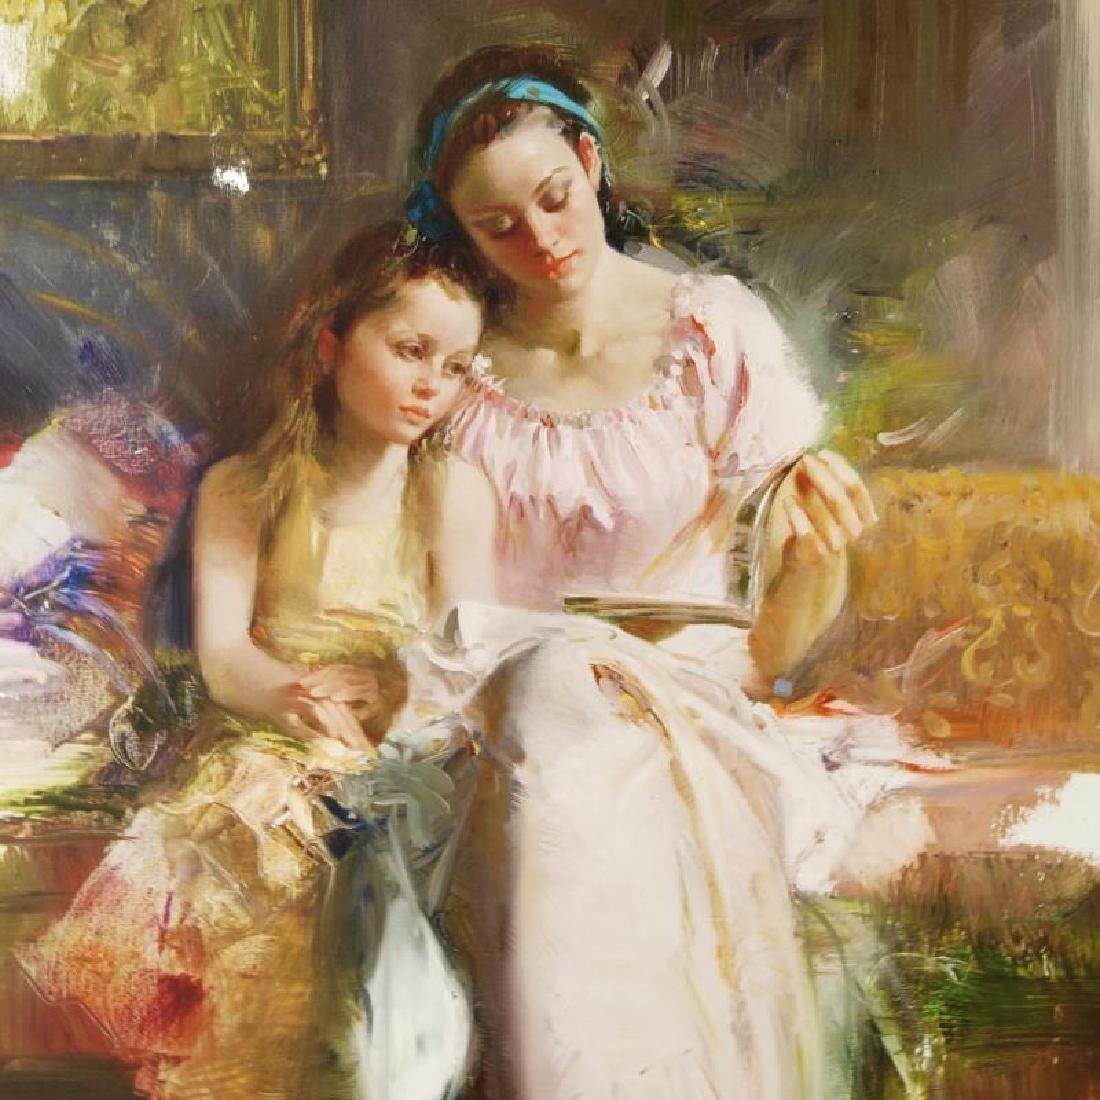 Bedtime Stories by Pino (1939-2010) - 2